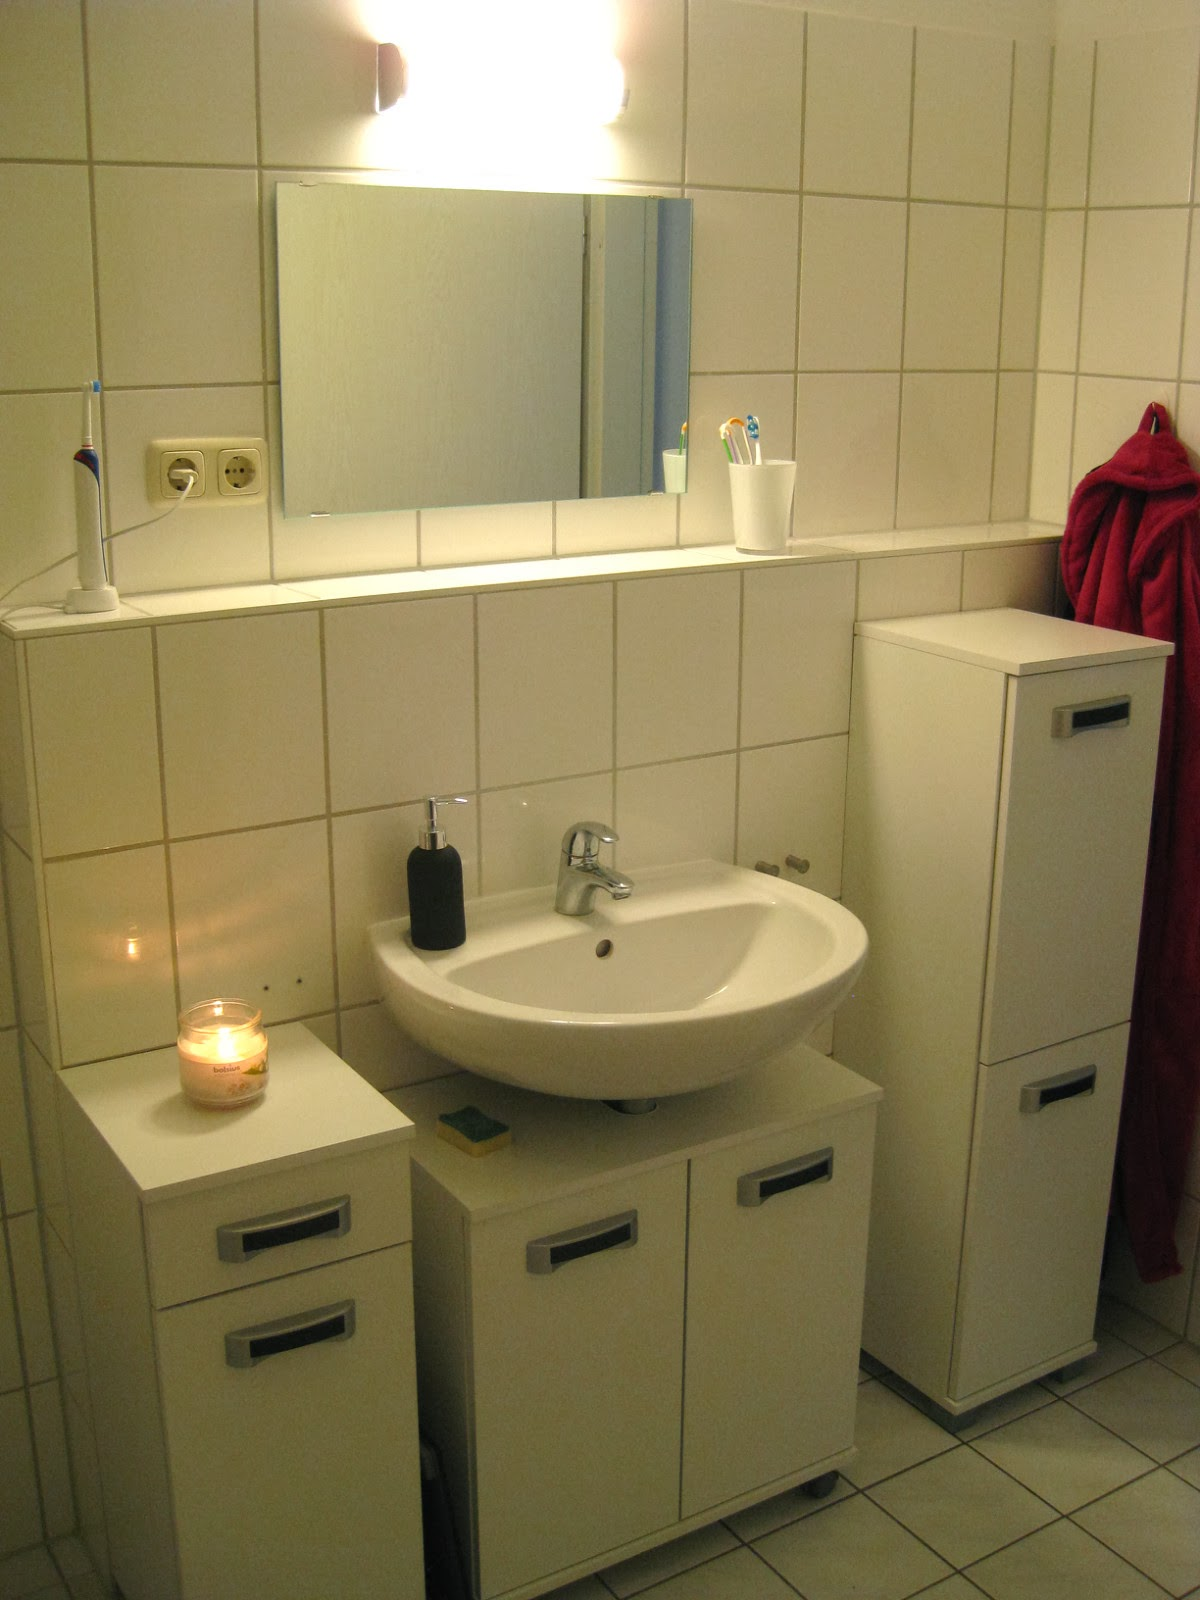 German Apartment Tour  Bathroom. Welcome to Germerica  German Apartment Tour  Bathroom